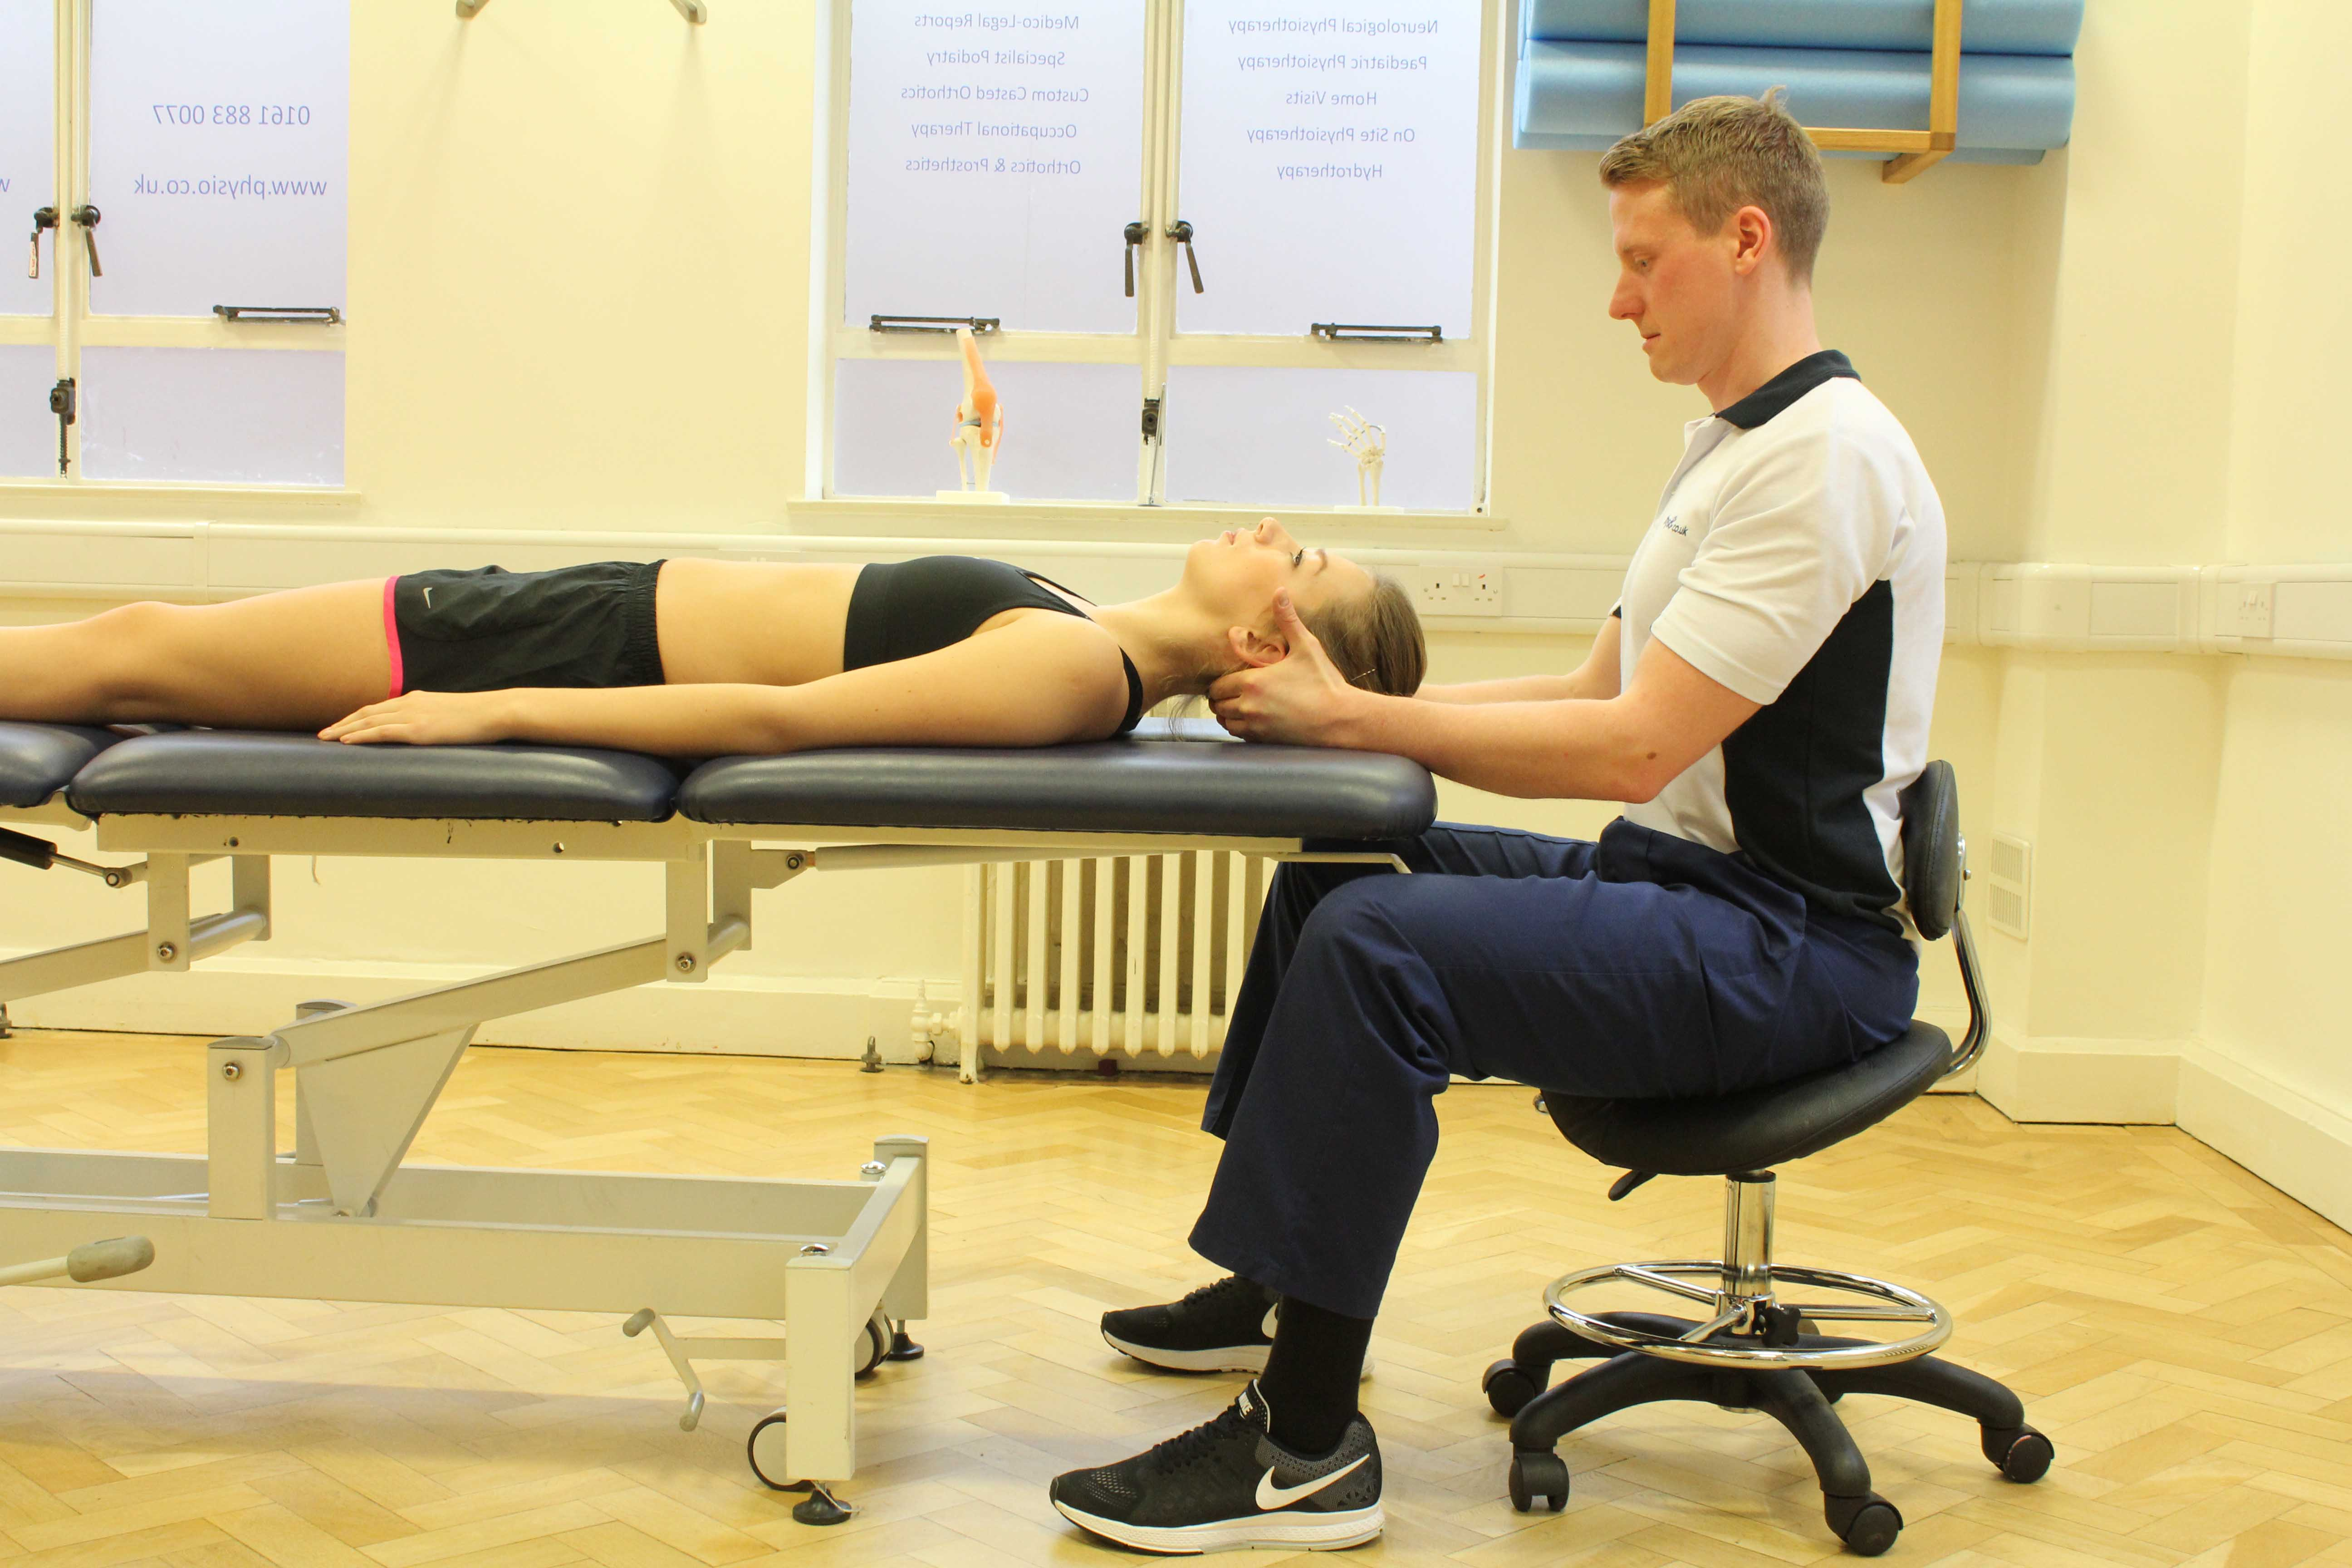 Soft tissue massage and mobilisations of the head, neck and jaw to relieve pain and stiffness